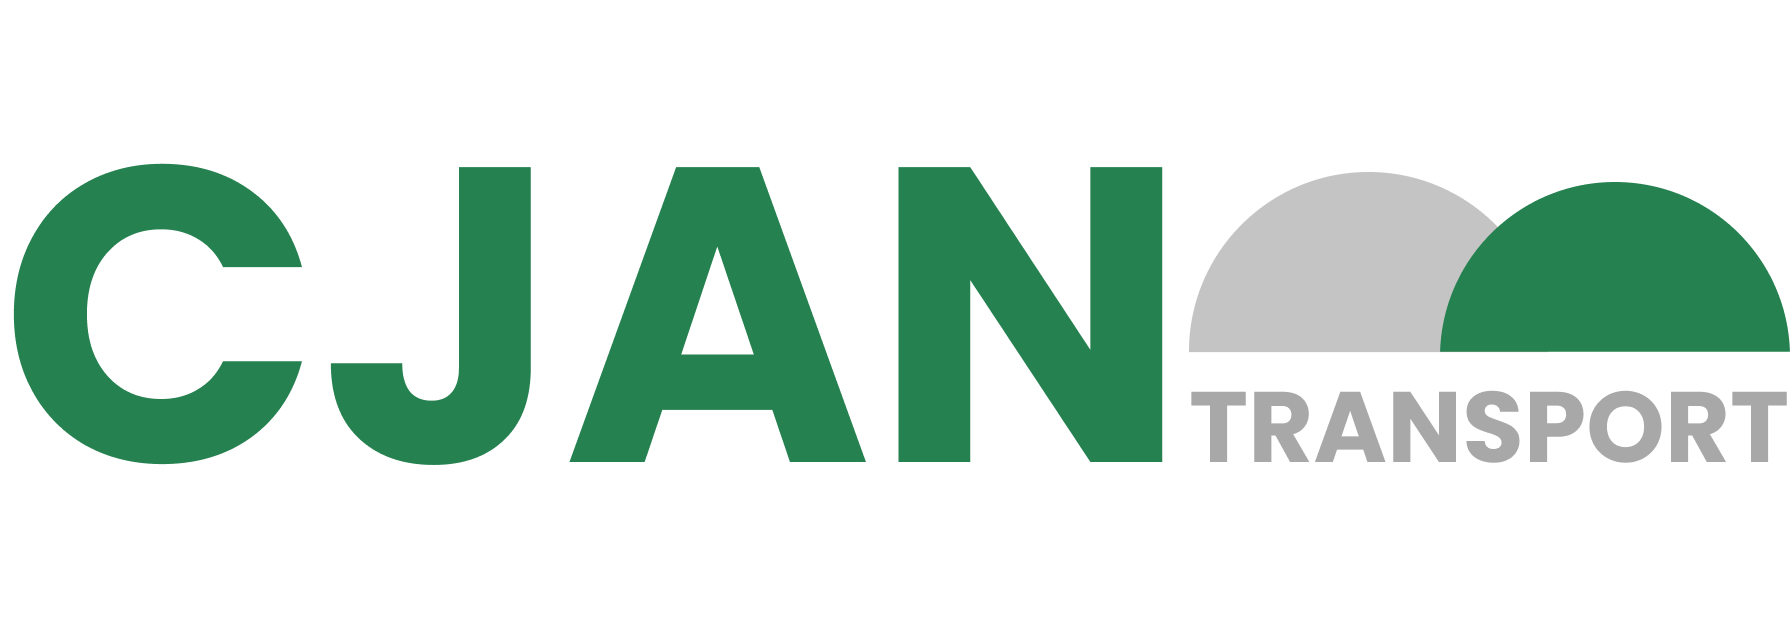 Customer CJAN Transport Logo